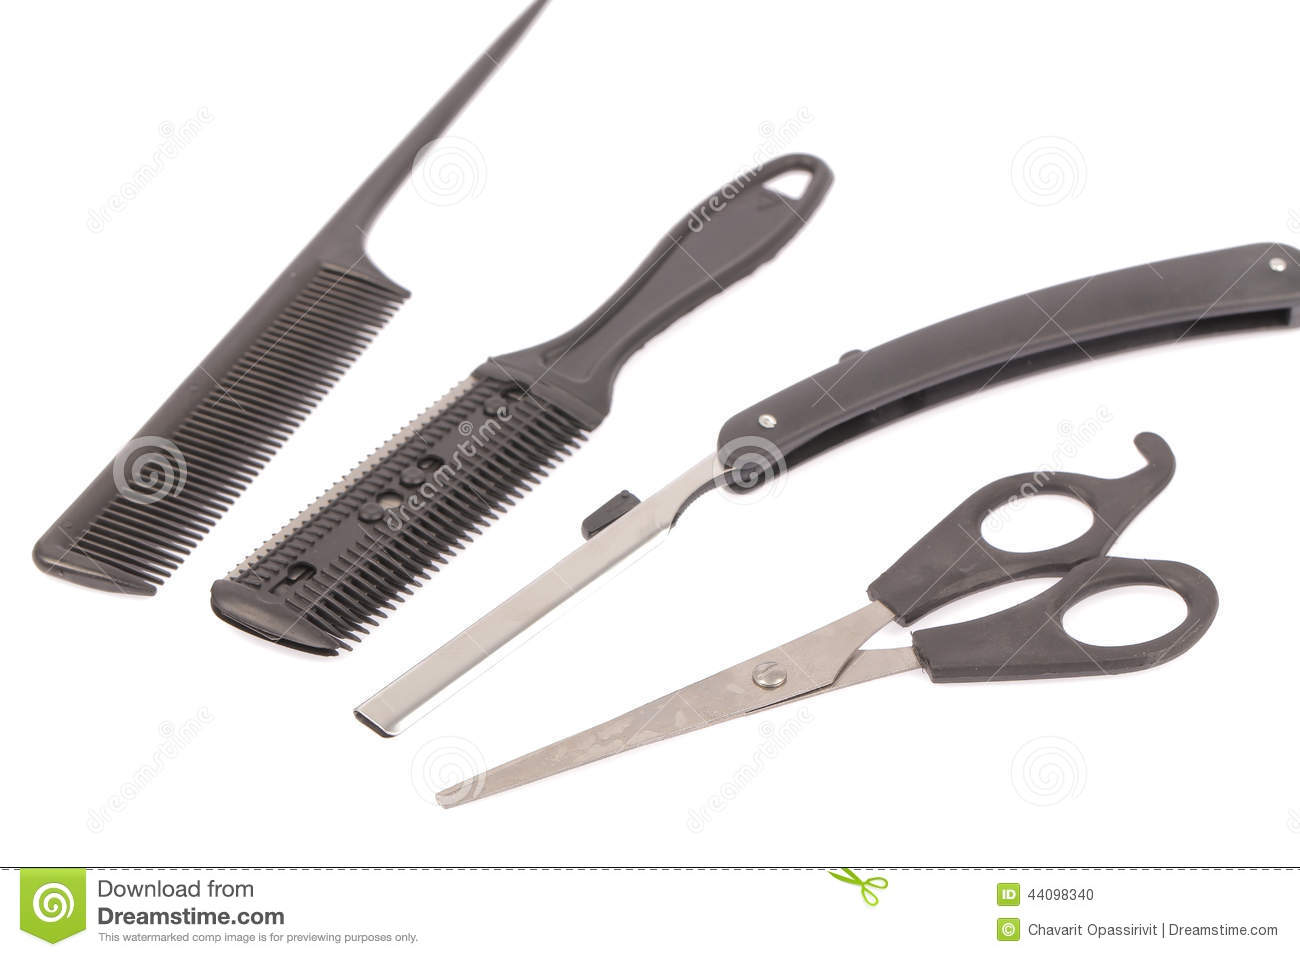 Professional Hairdresser : Professional Hairdresser Tools Stock Photo - Image: 44098340